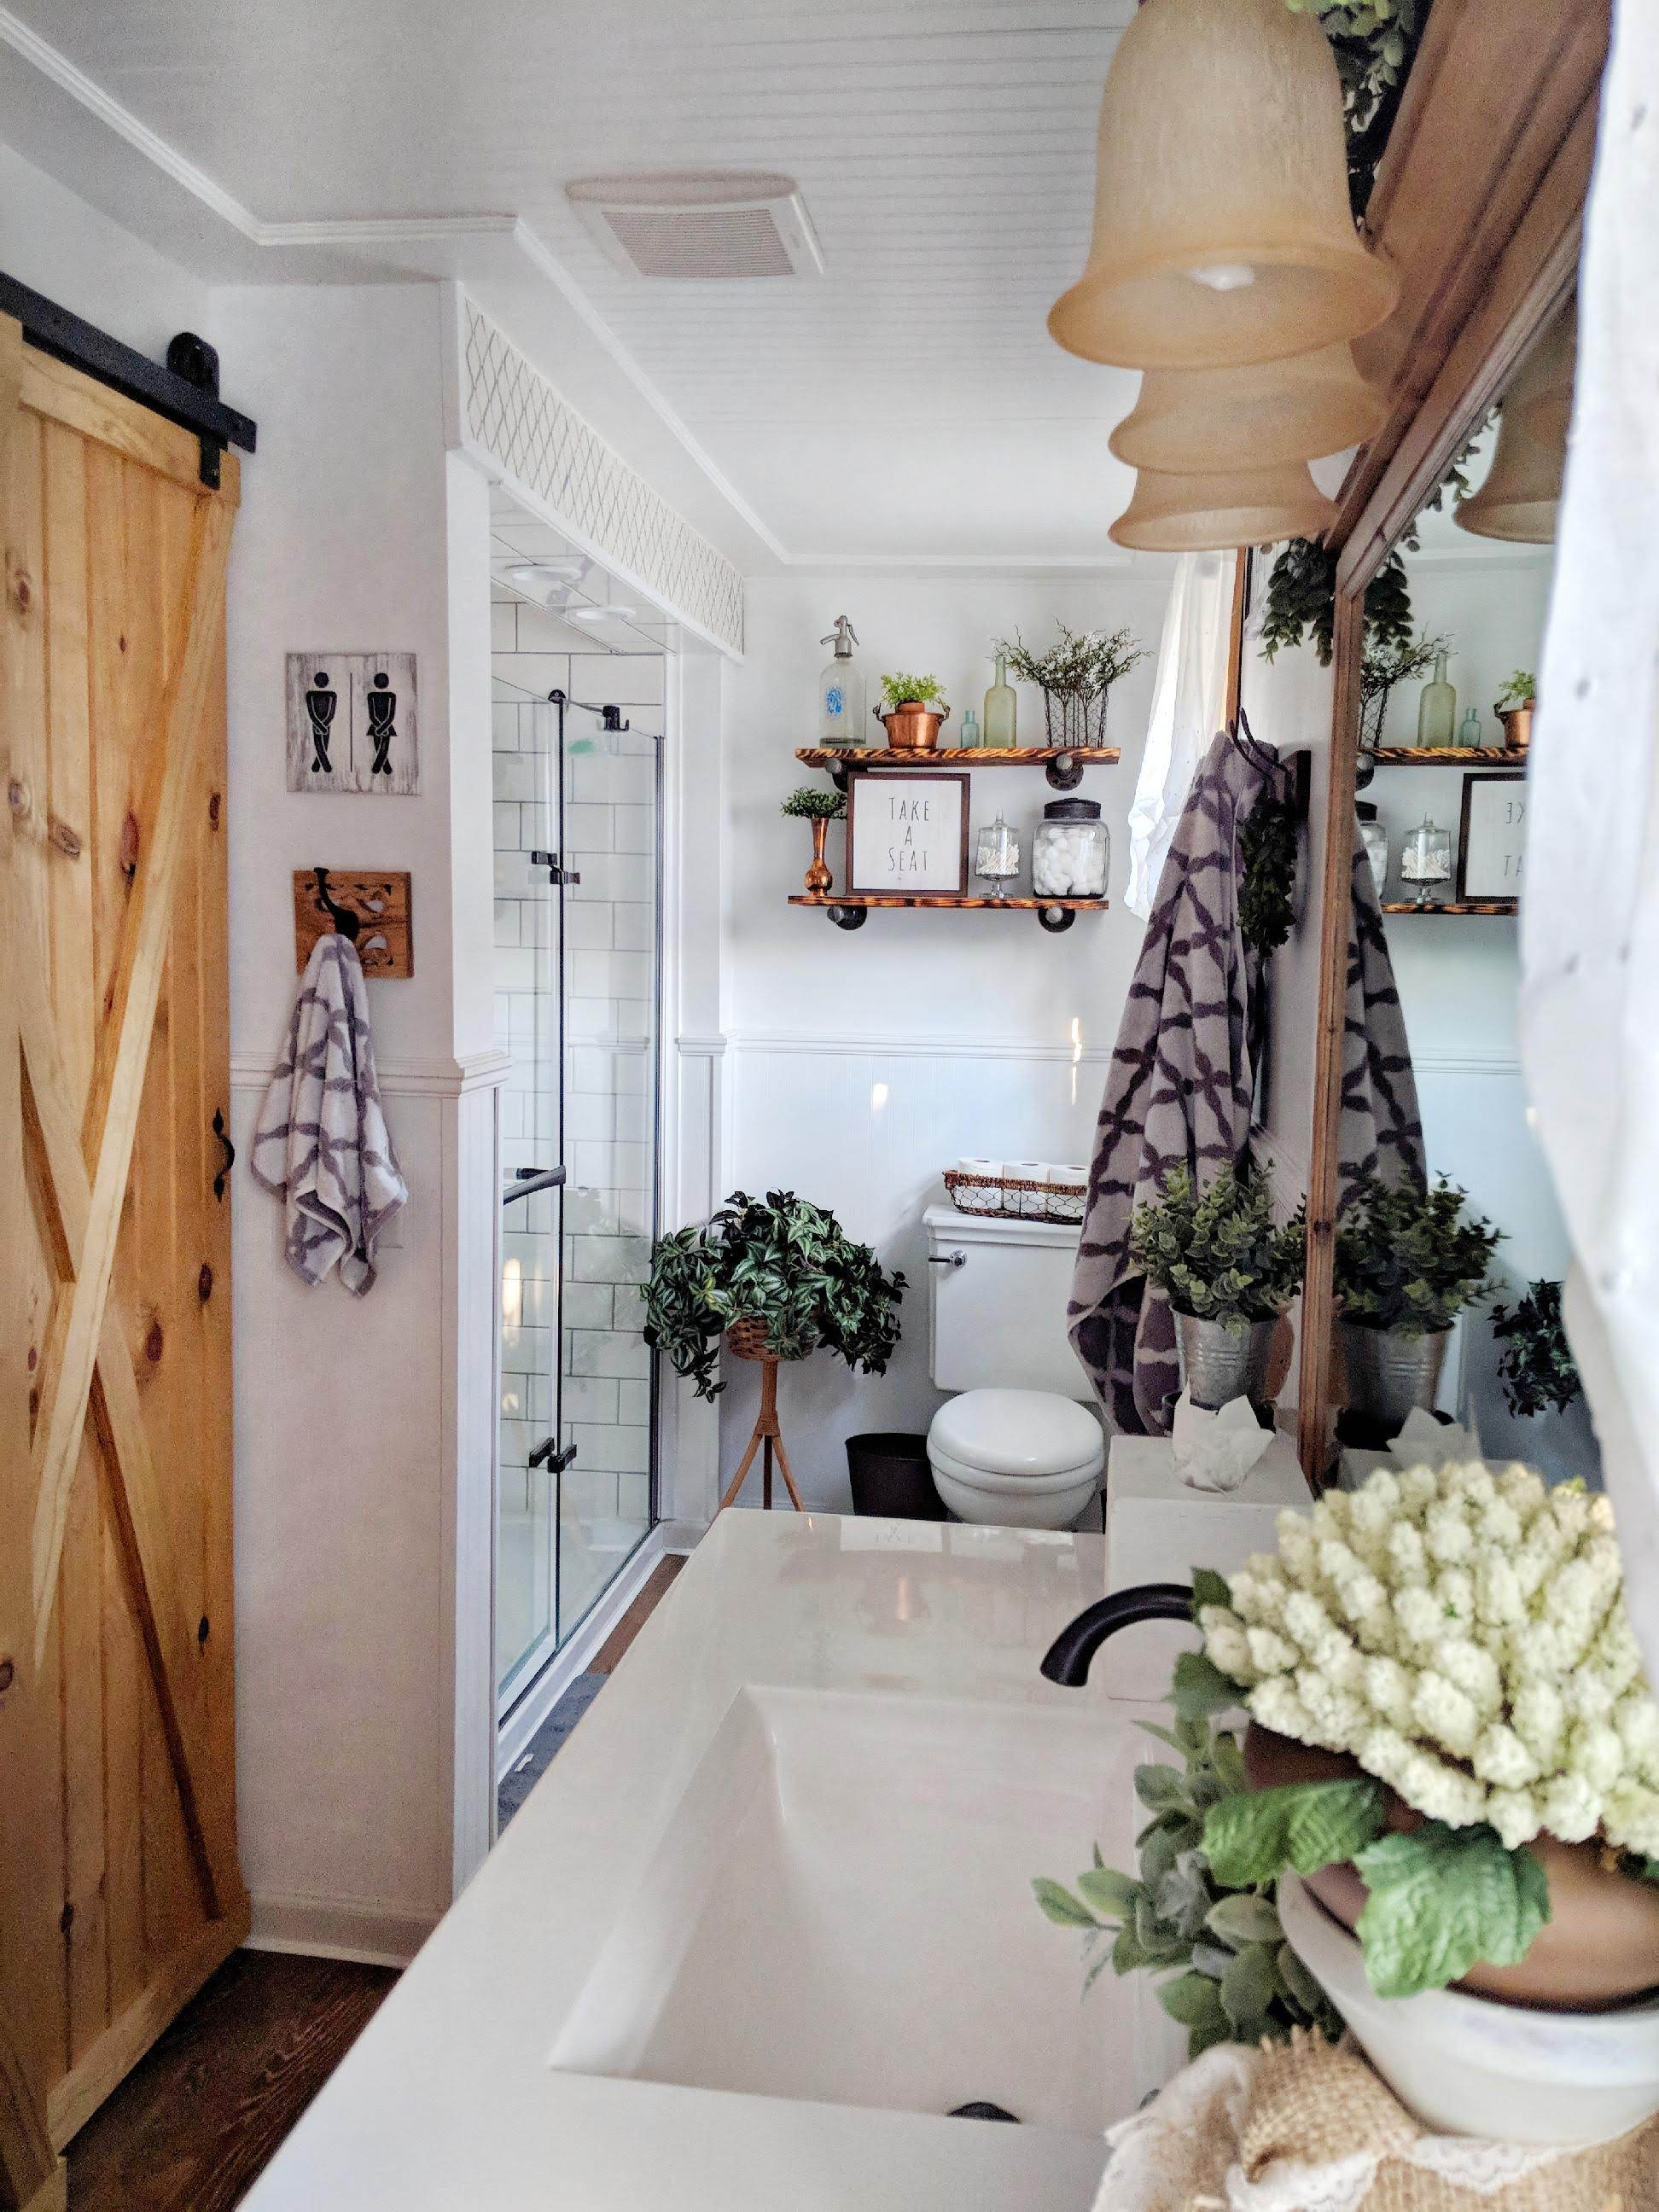 Guest Post: Bathroom Home Tour - Our Home with Hounds